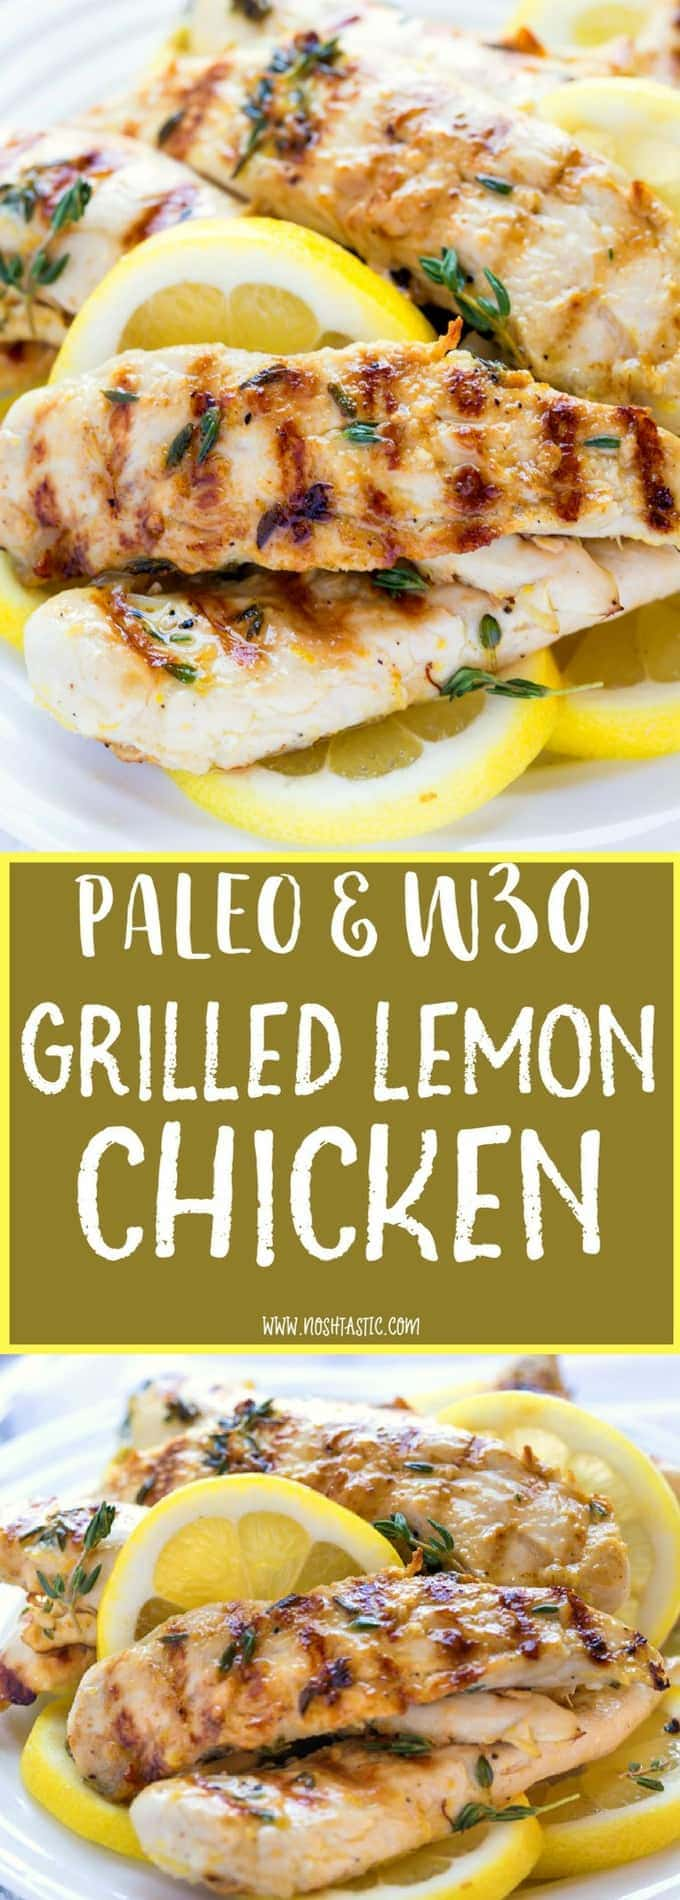 the BEST Grilled Paleo Lemon, such simple recipe made with garlic, lemon and thyme and cooked to perfection on the grill!